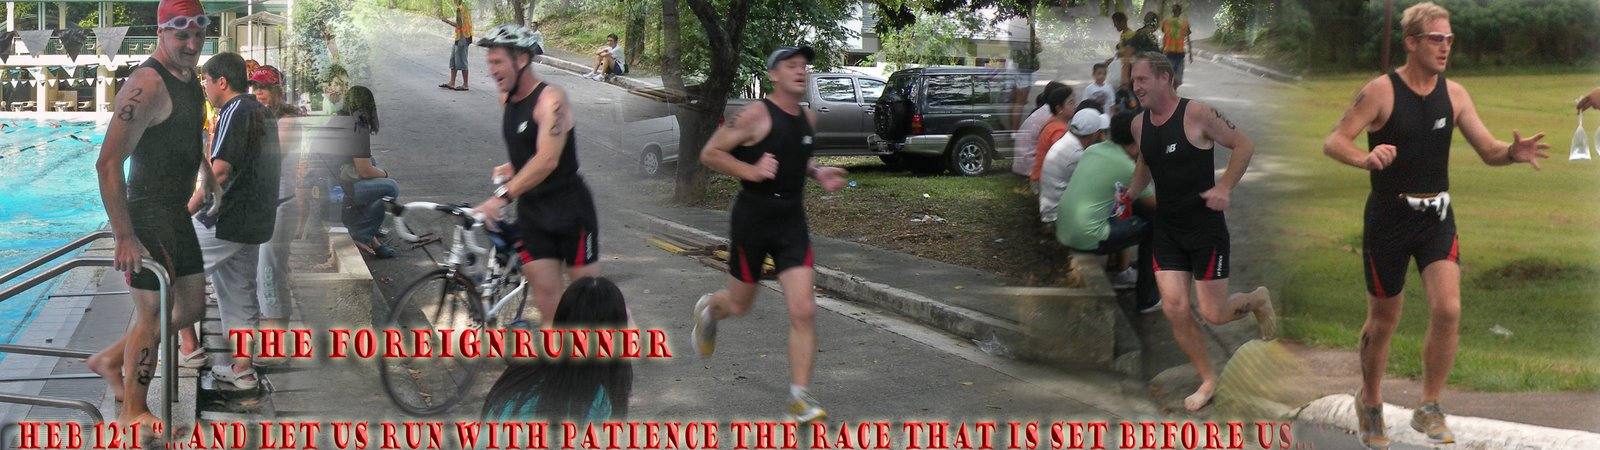 The foreign runner